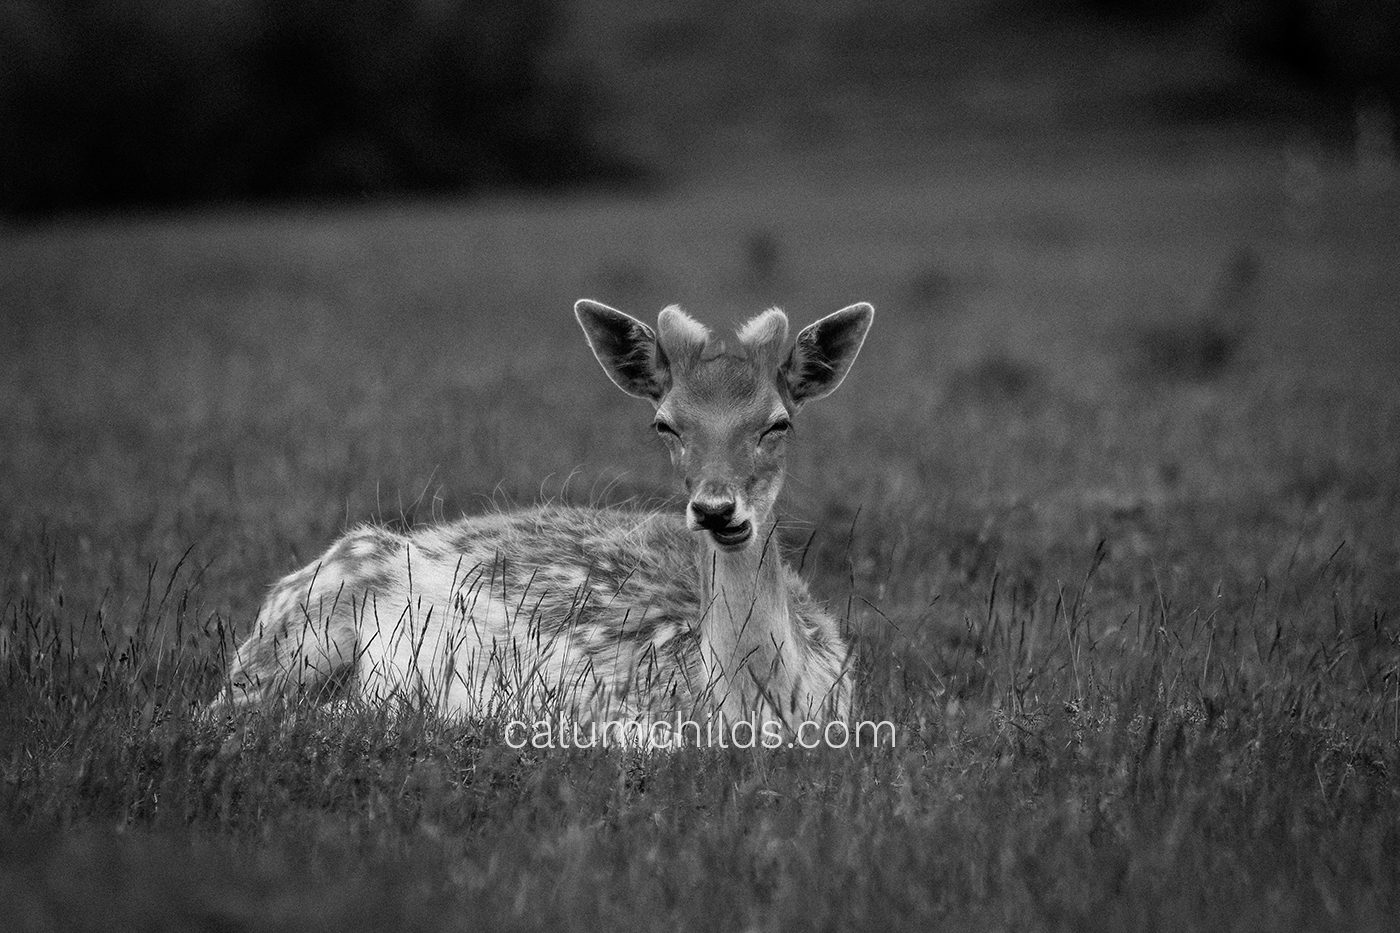 A doe is chewing some grass (not visible) whilst looking at the camera with suspicion.